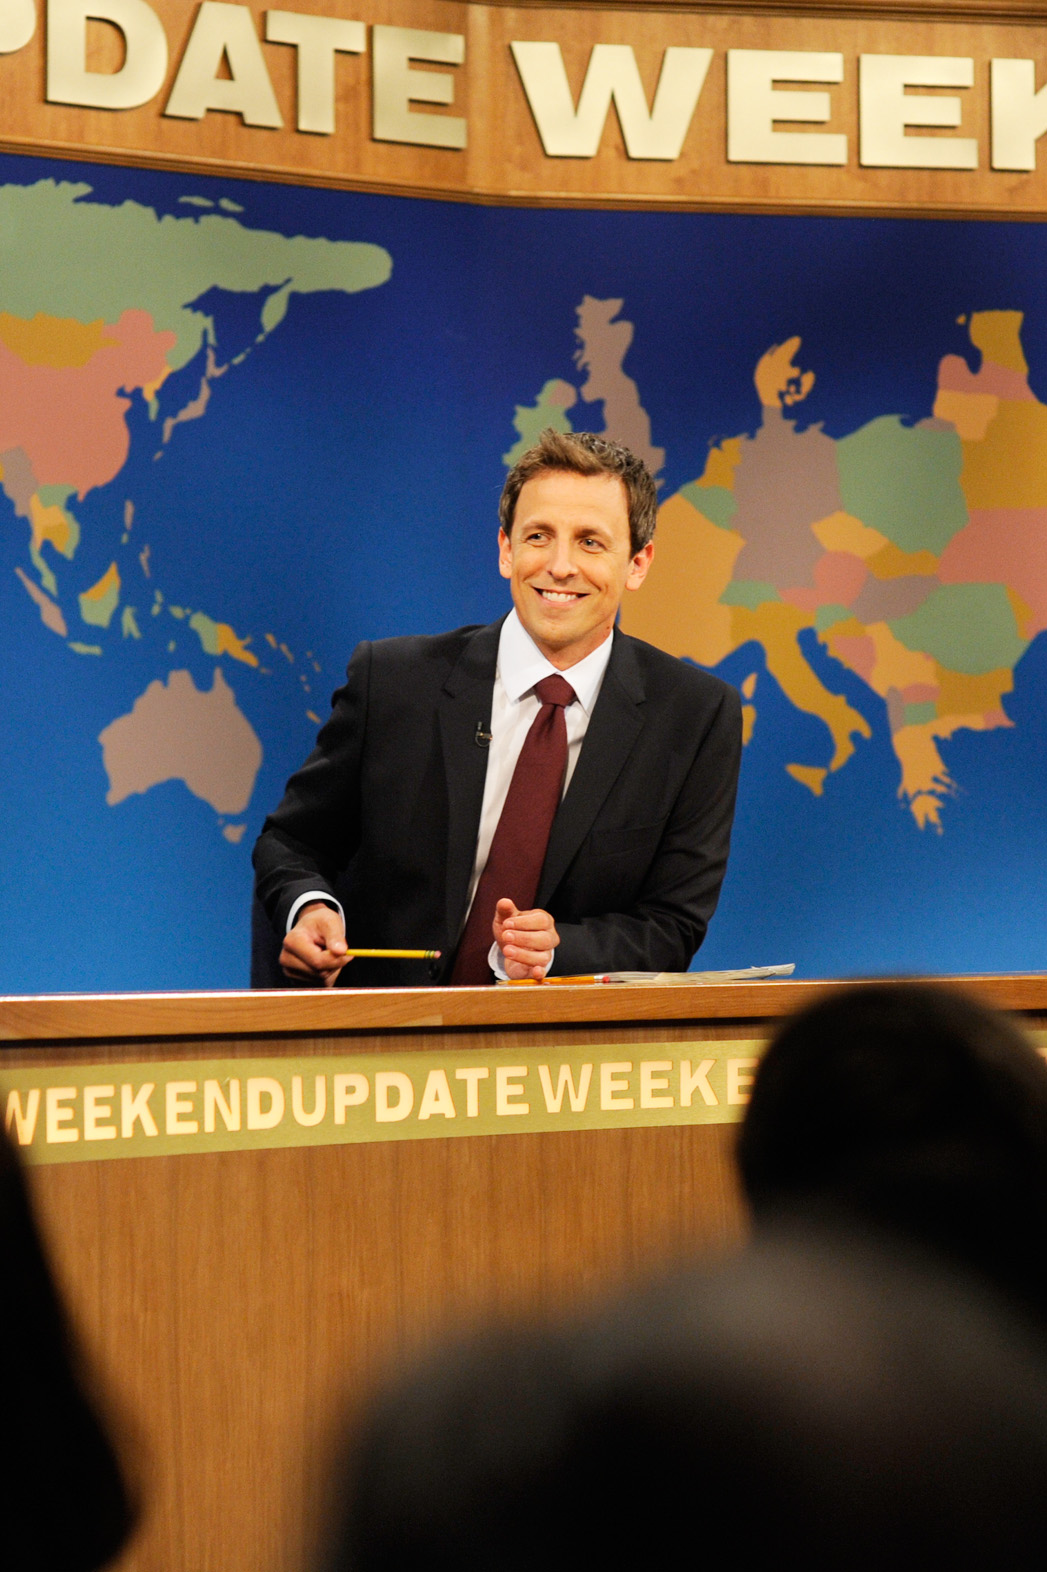 Weekend Update with Seth Meyers - P 2013